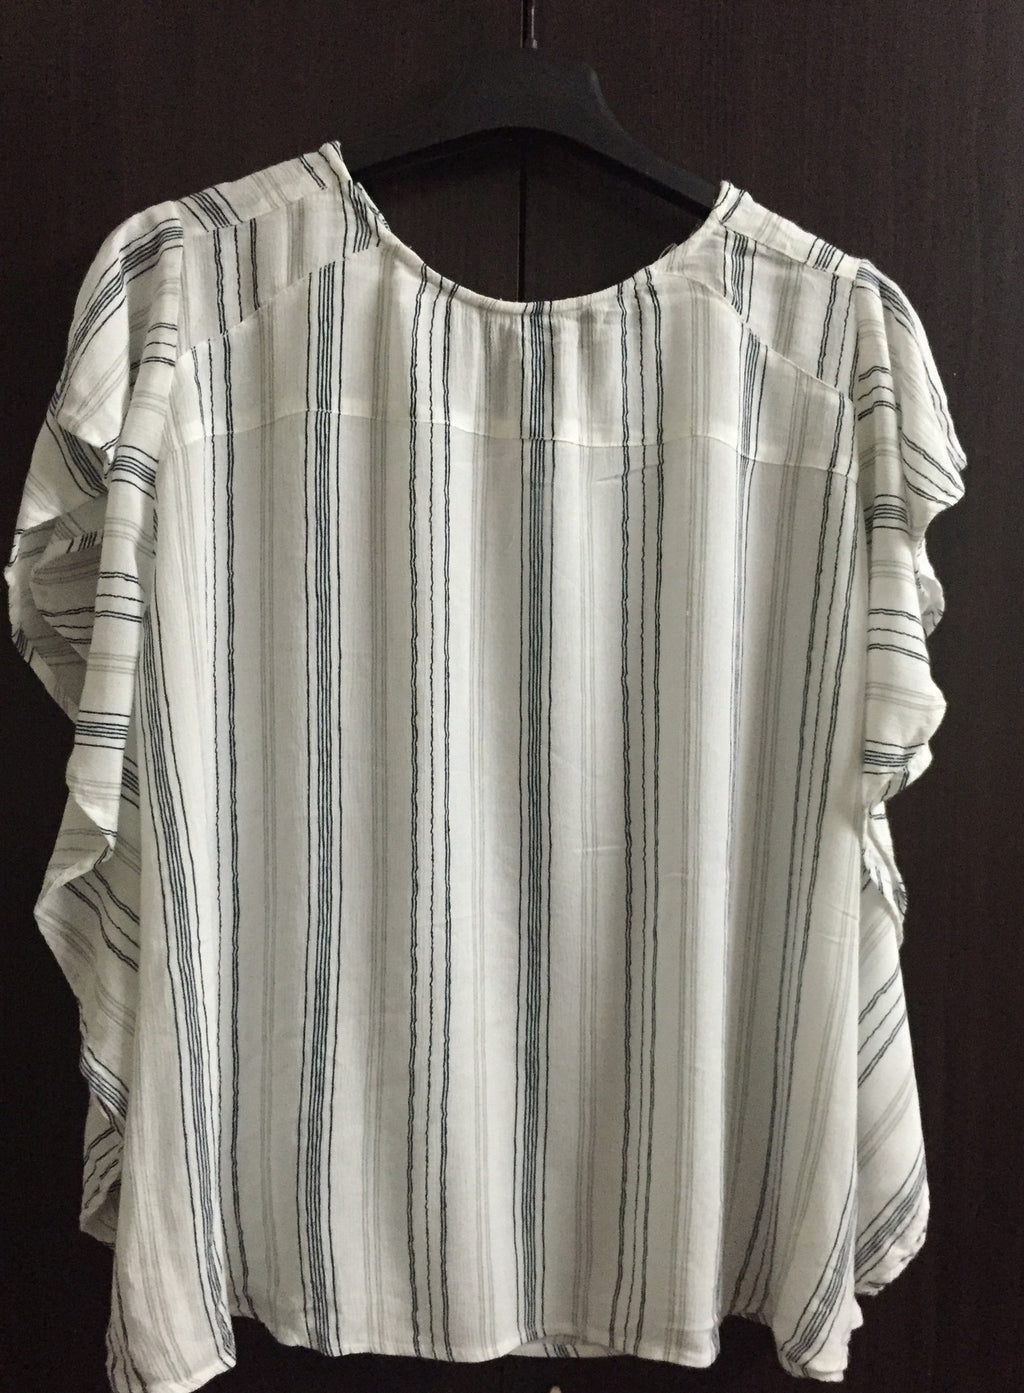 White Cotton Stripes Comfy Top